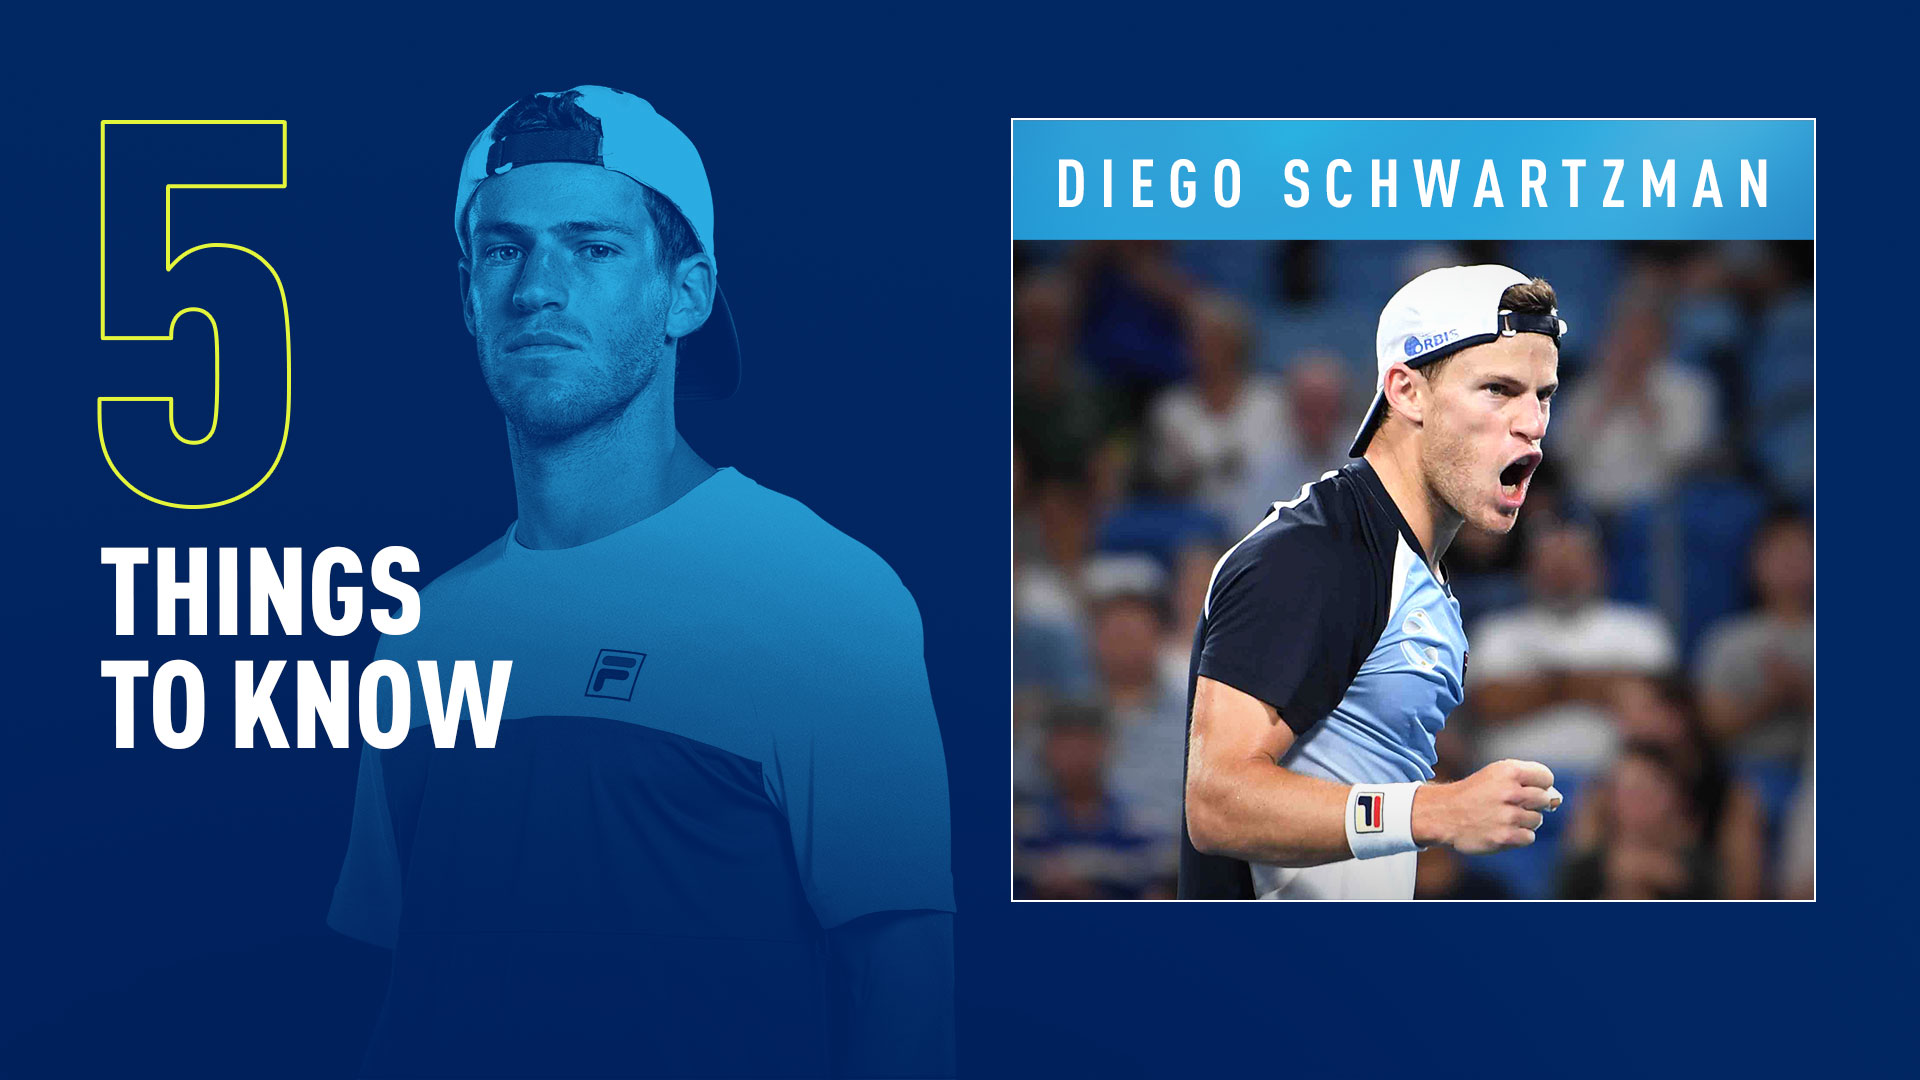 Five Things To Know About Diego Schwartzman Atp Tour The Union Journal